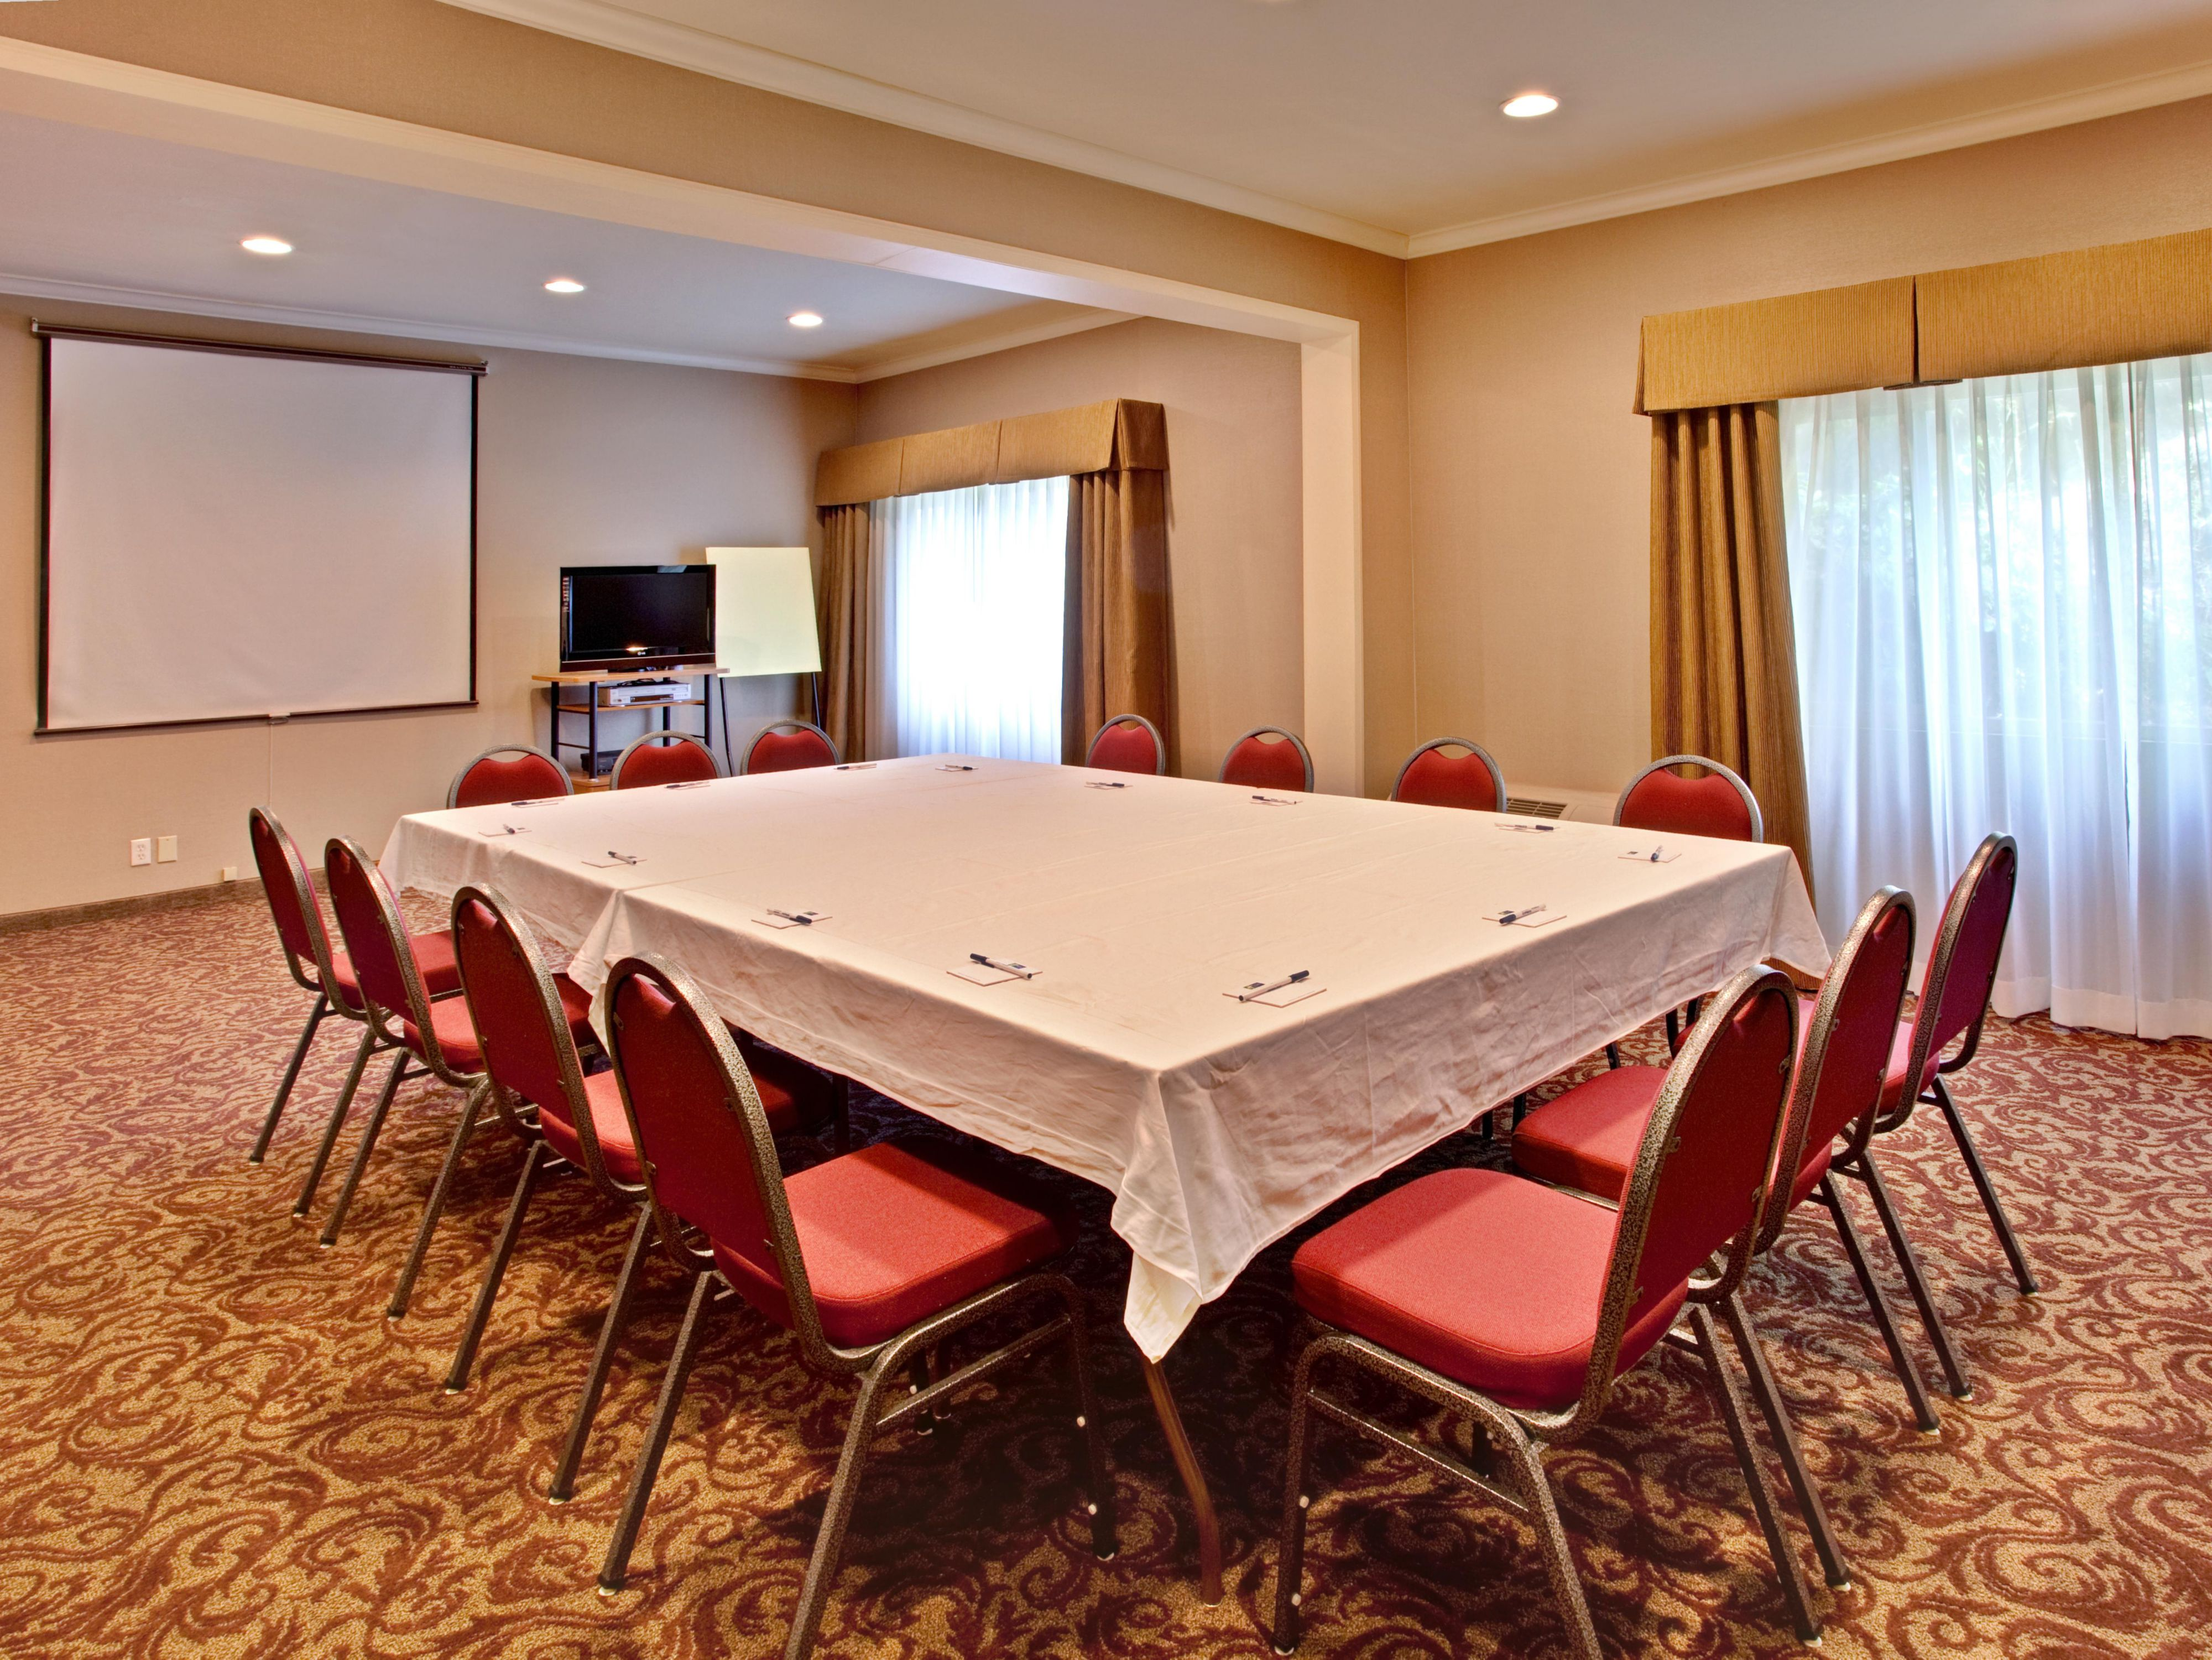 Cardiff, California meetings available at the Holiday Inn Express